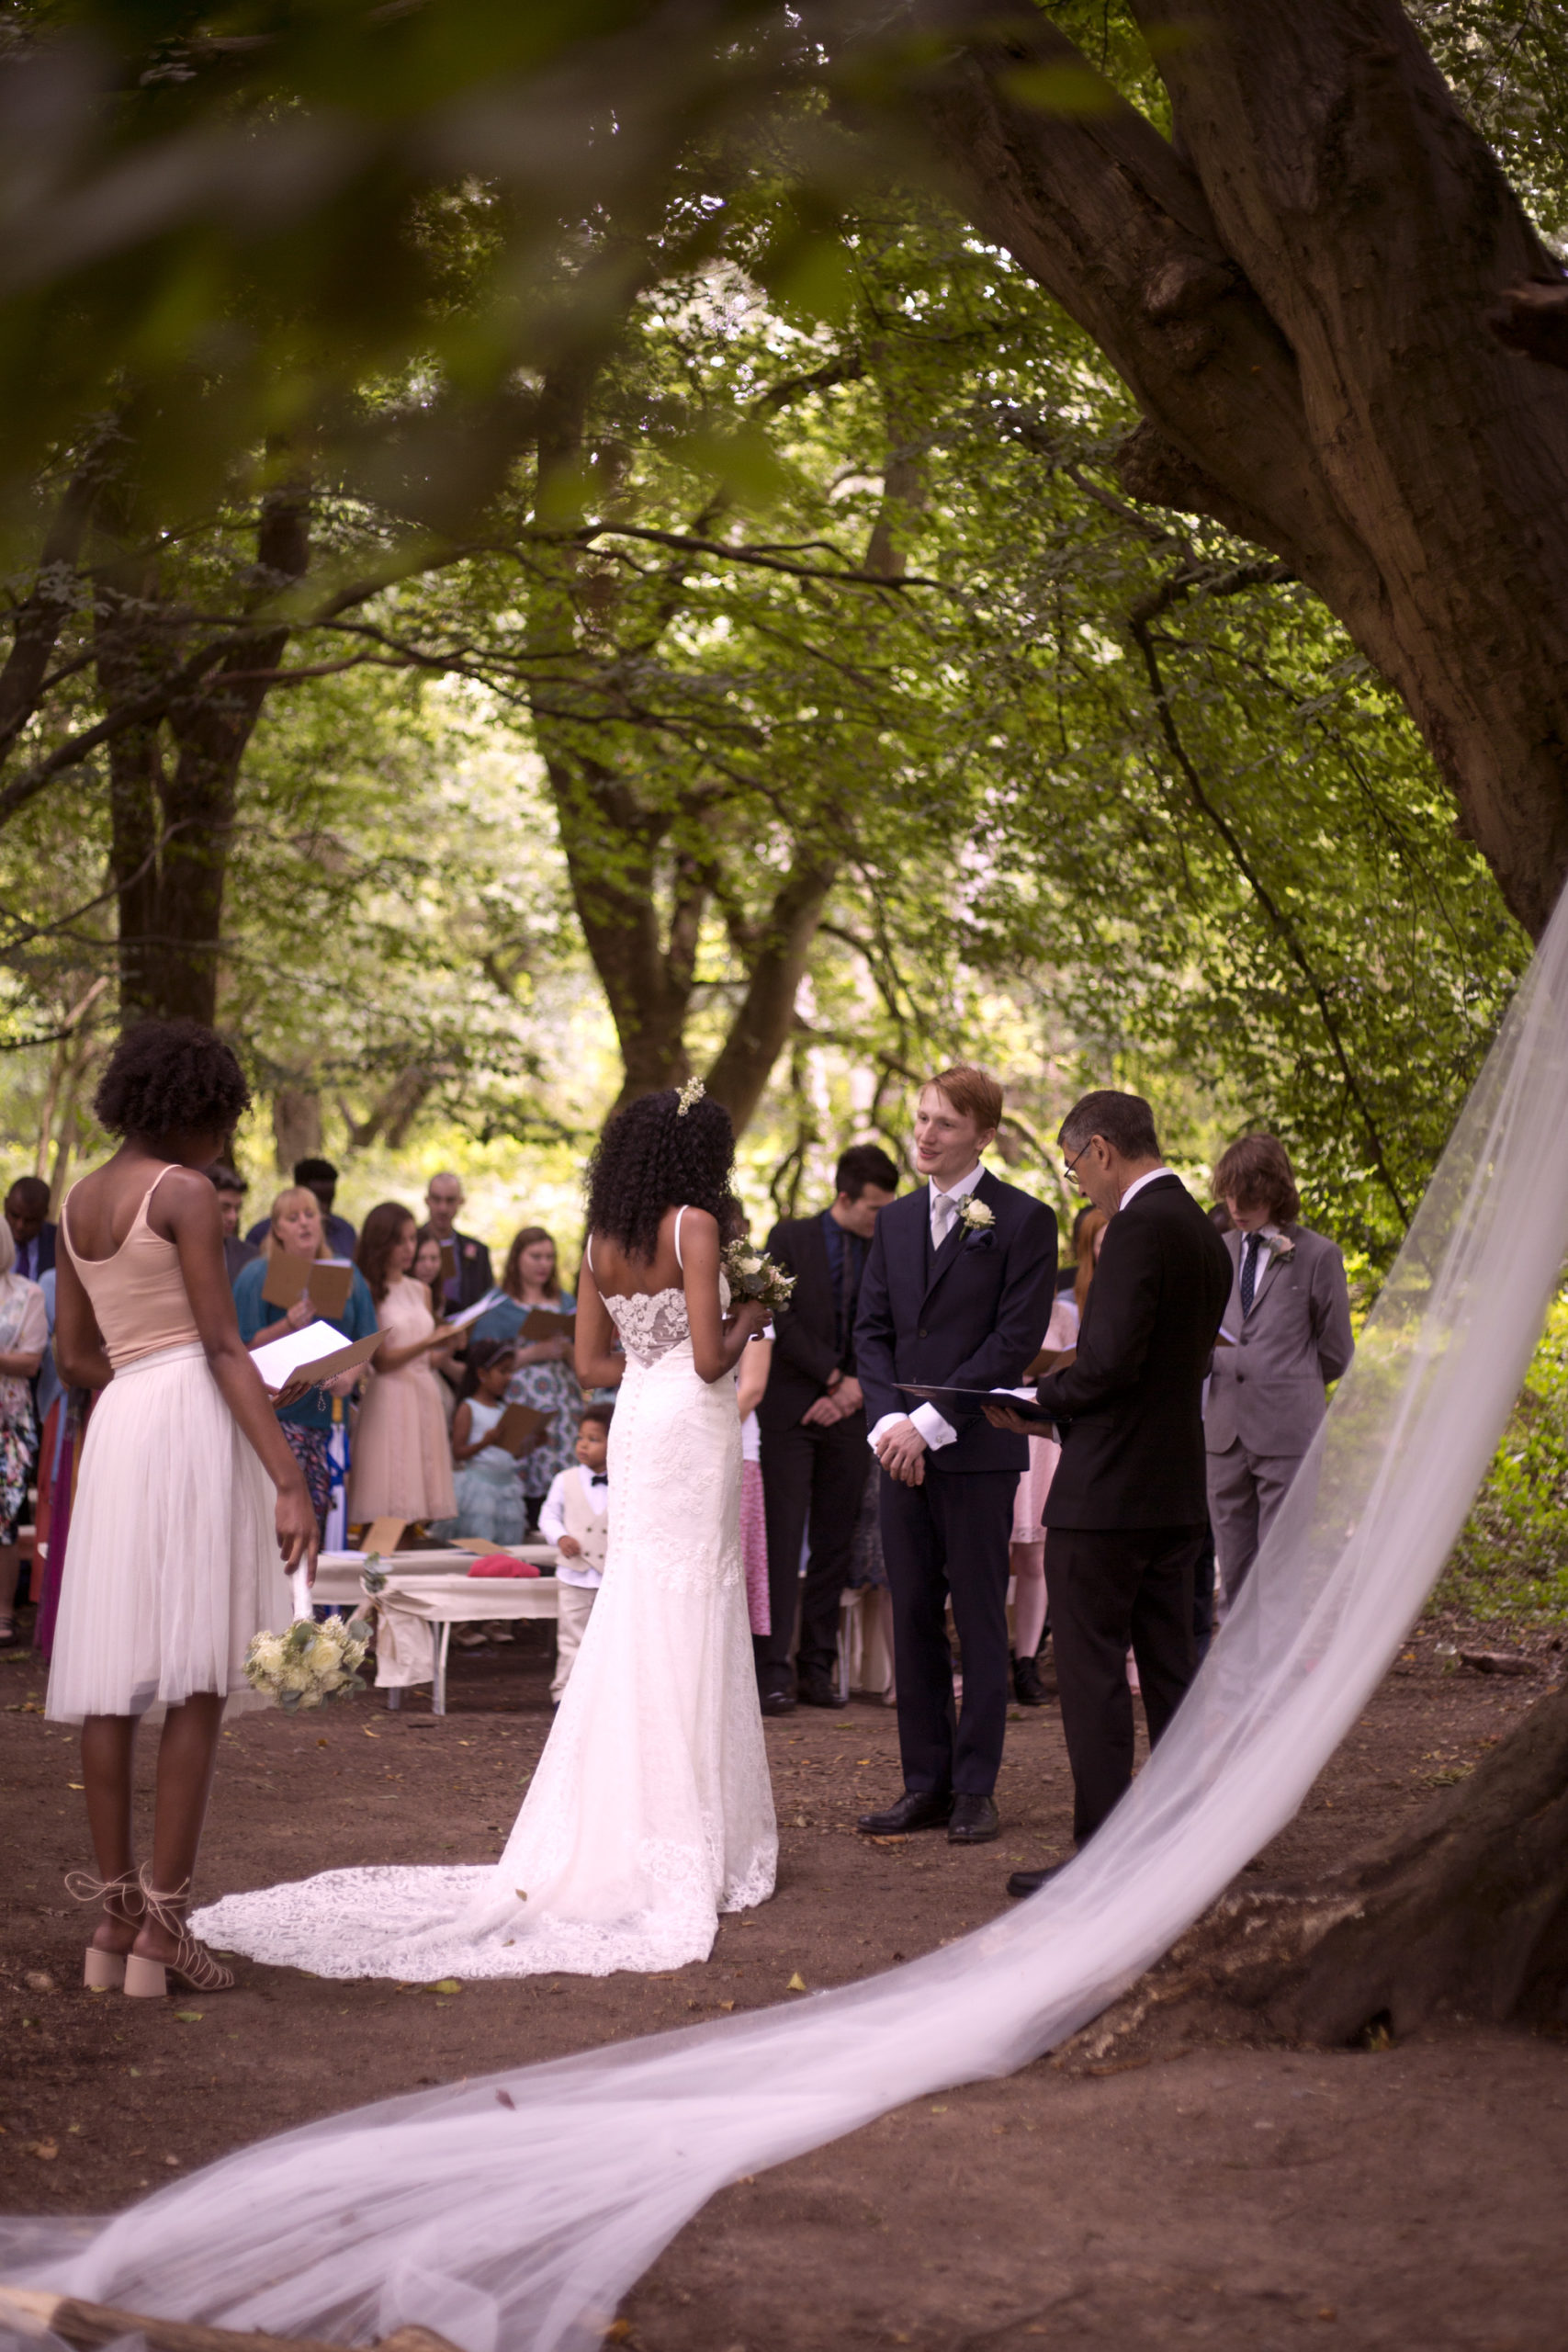 Wedding party stand for outdoor forest wedding ceremony photographer